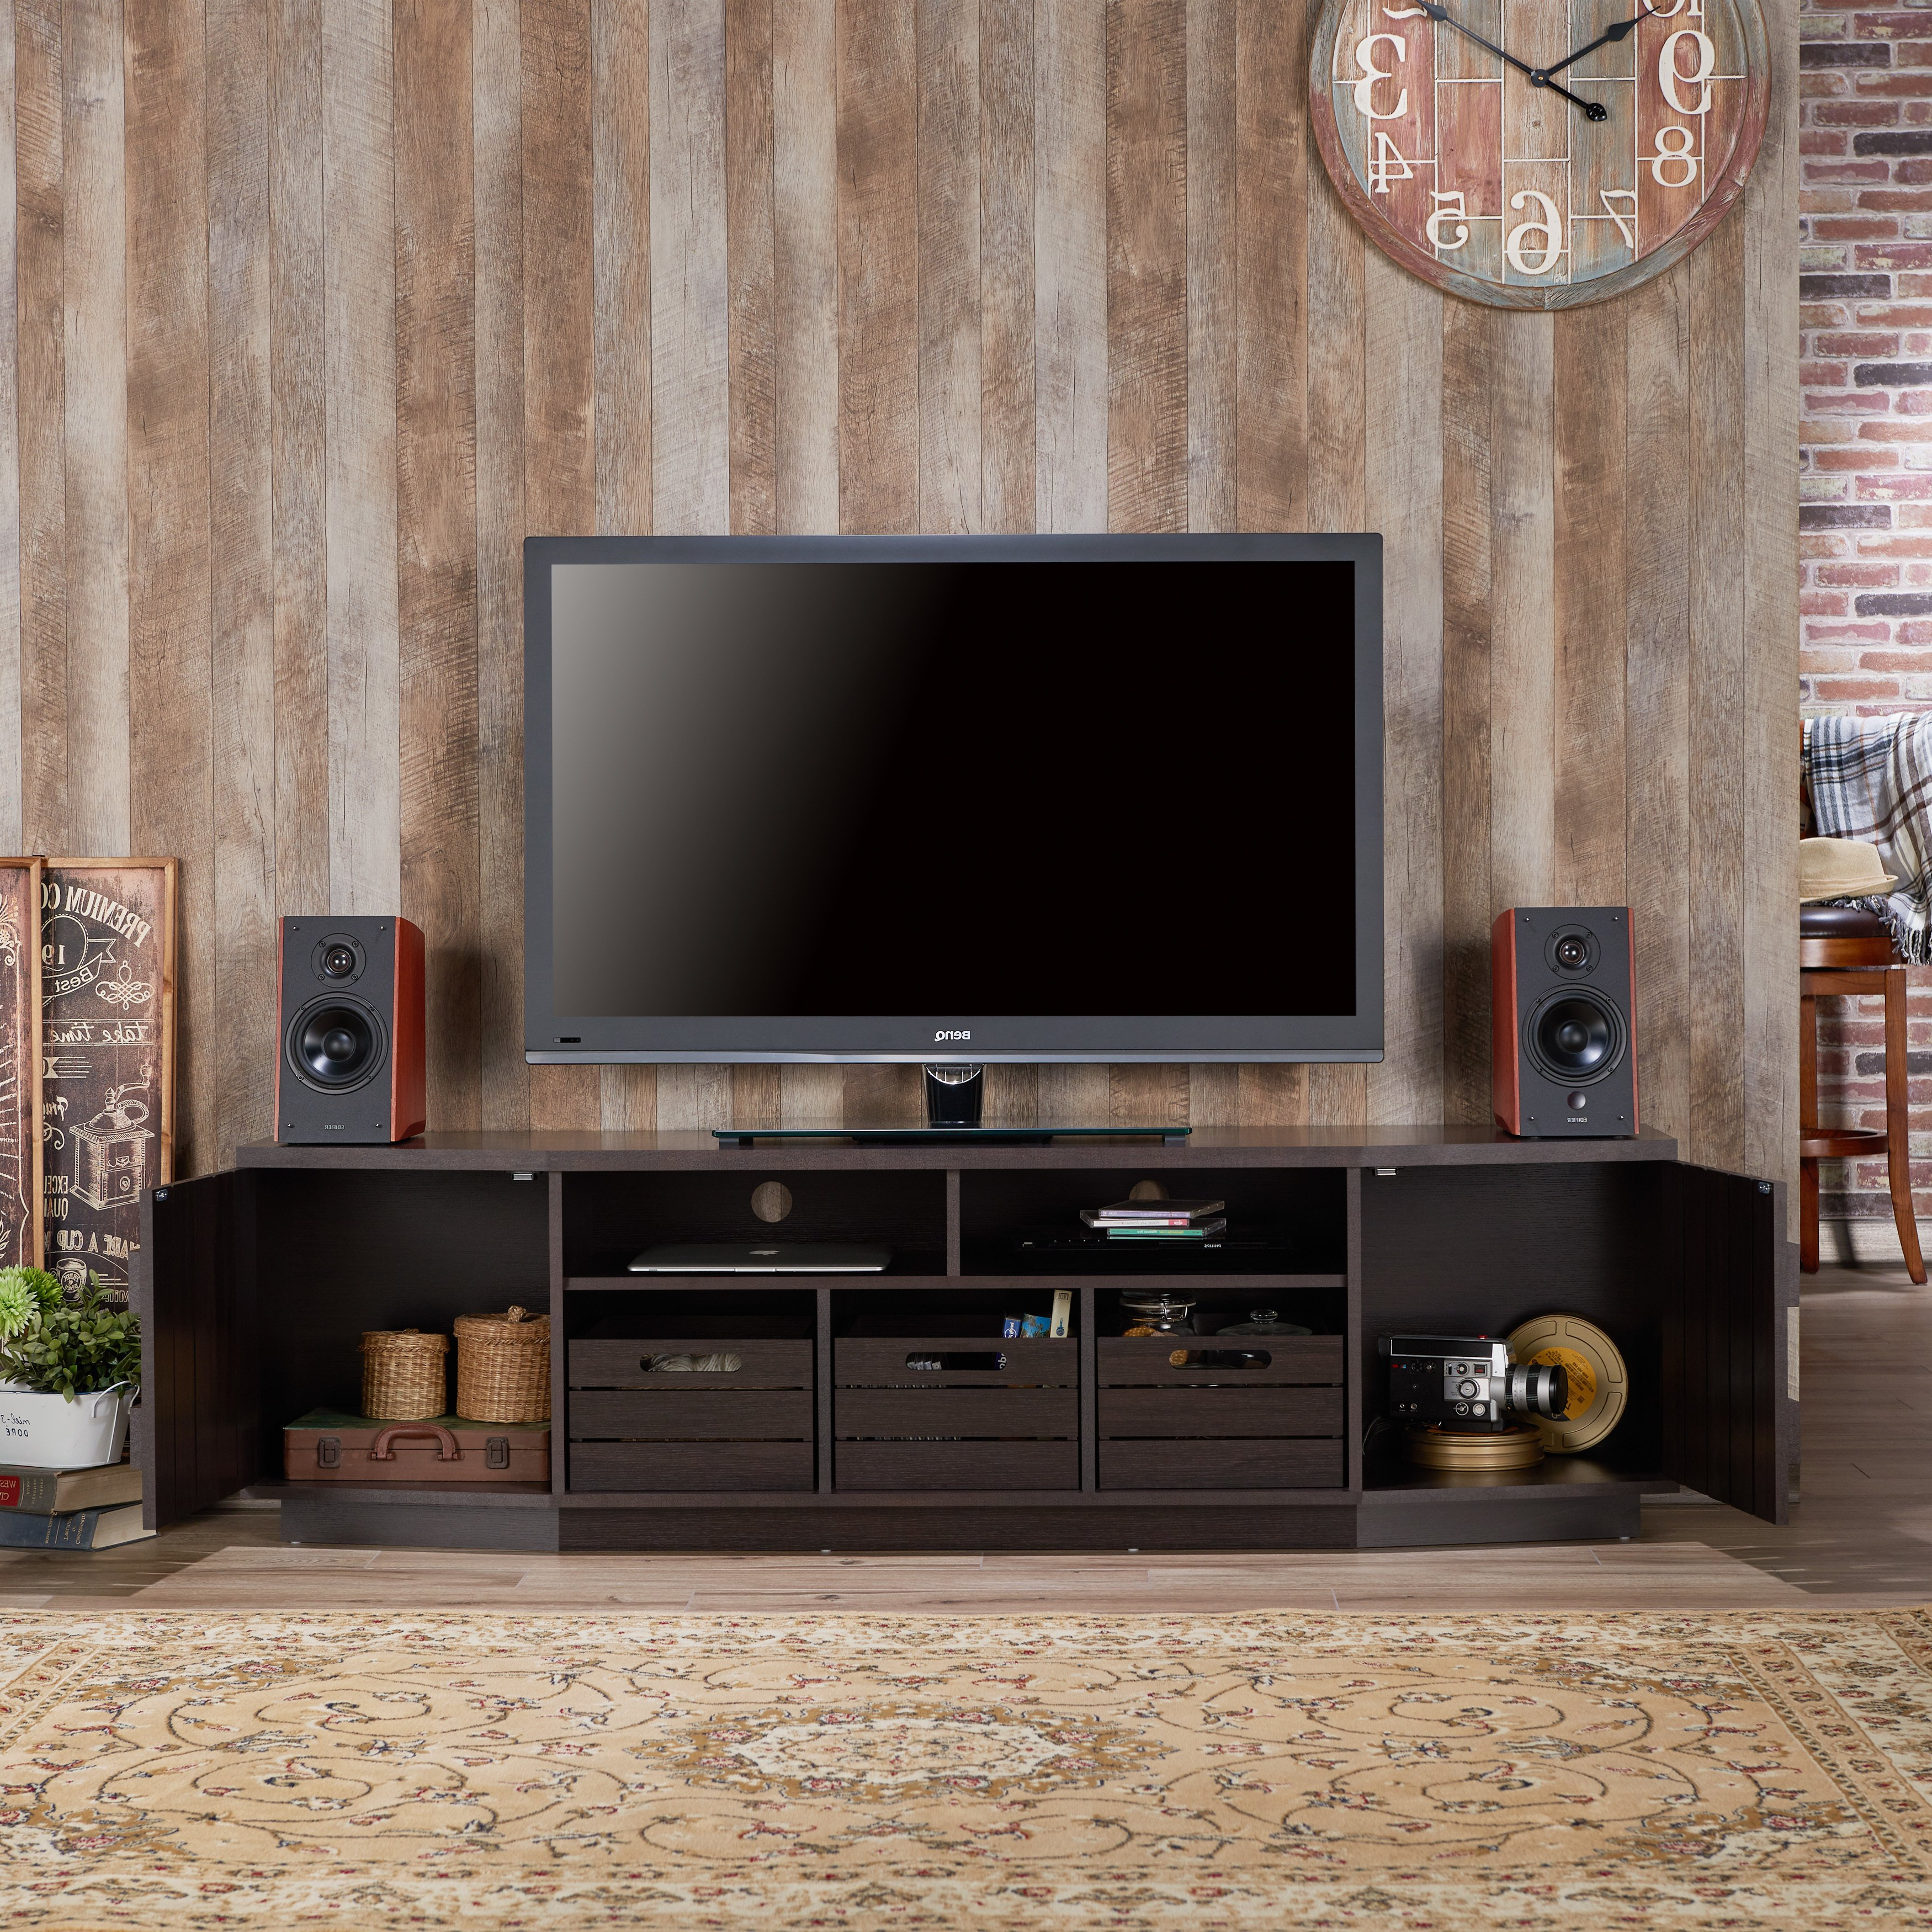 Trendy Shop Furniture Of America Harla Rustic 70 Inch Tv Stand With Regarding Casey Umber 54 Inch Tv Stands (View 17 of 20)